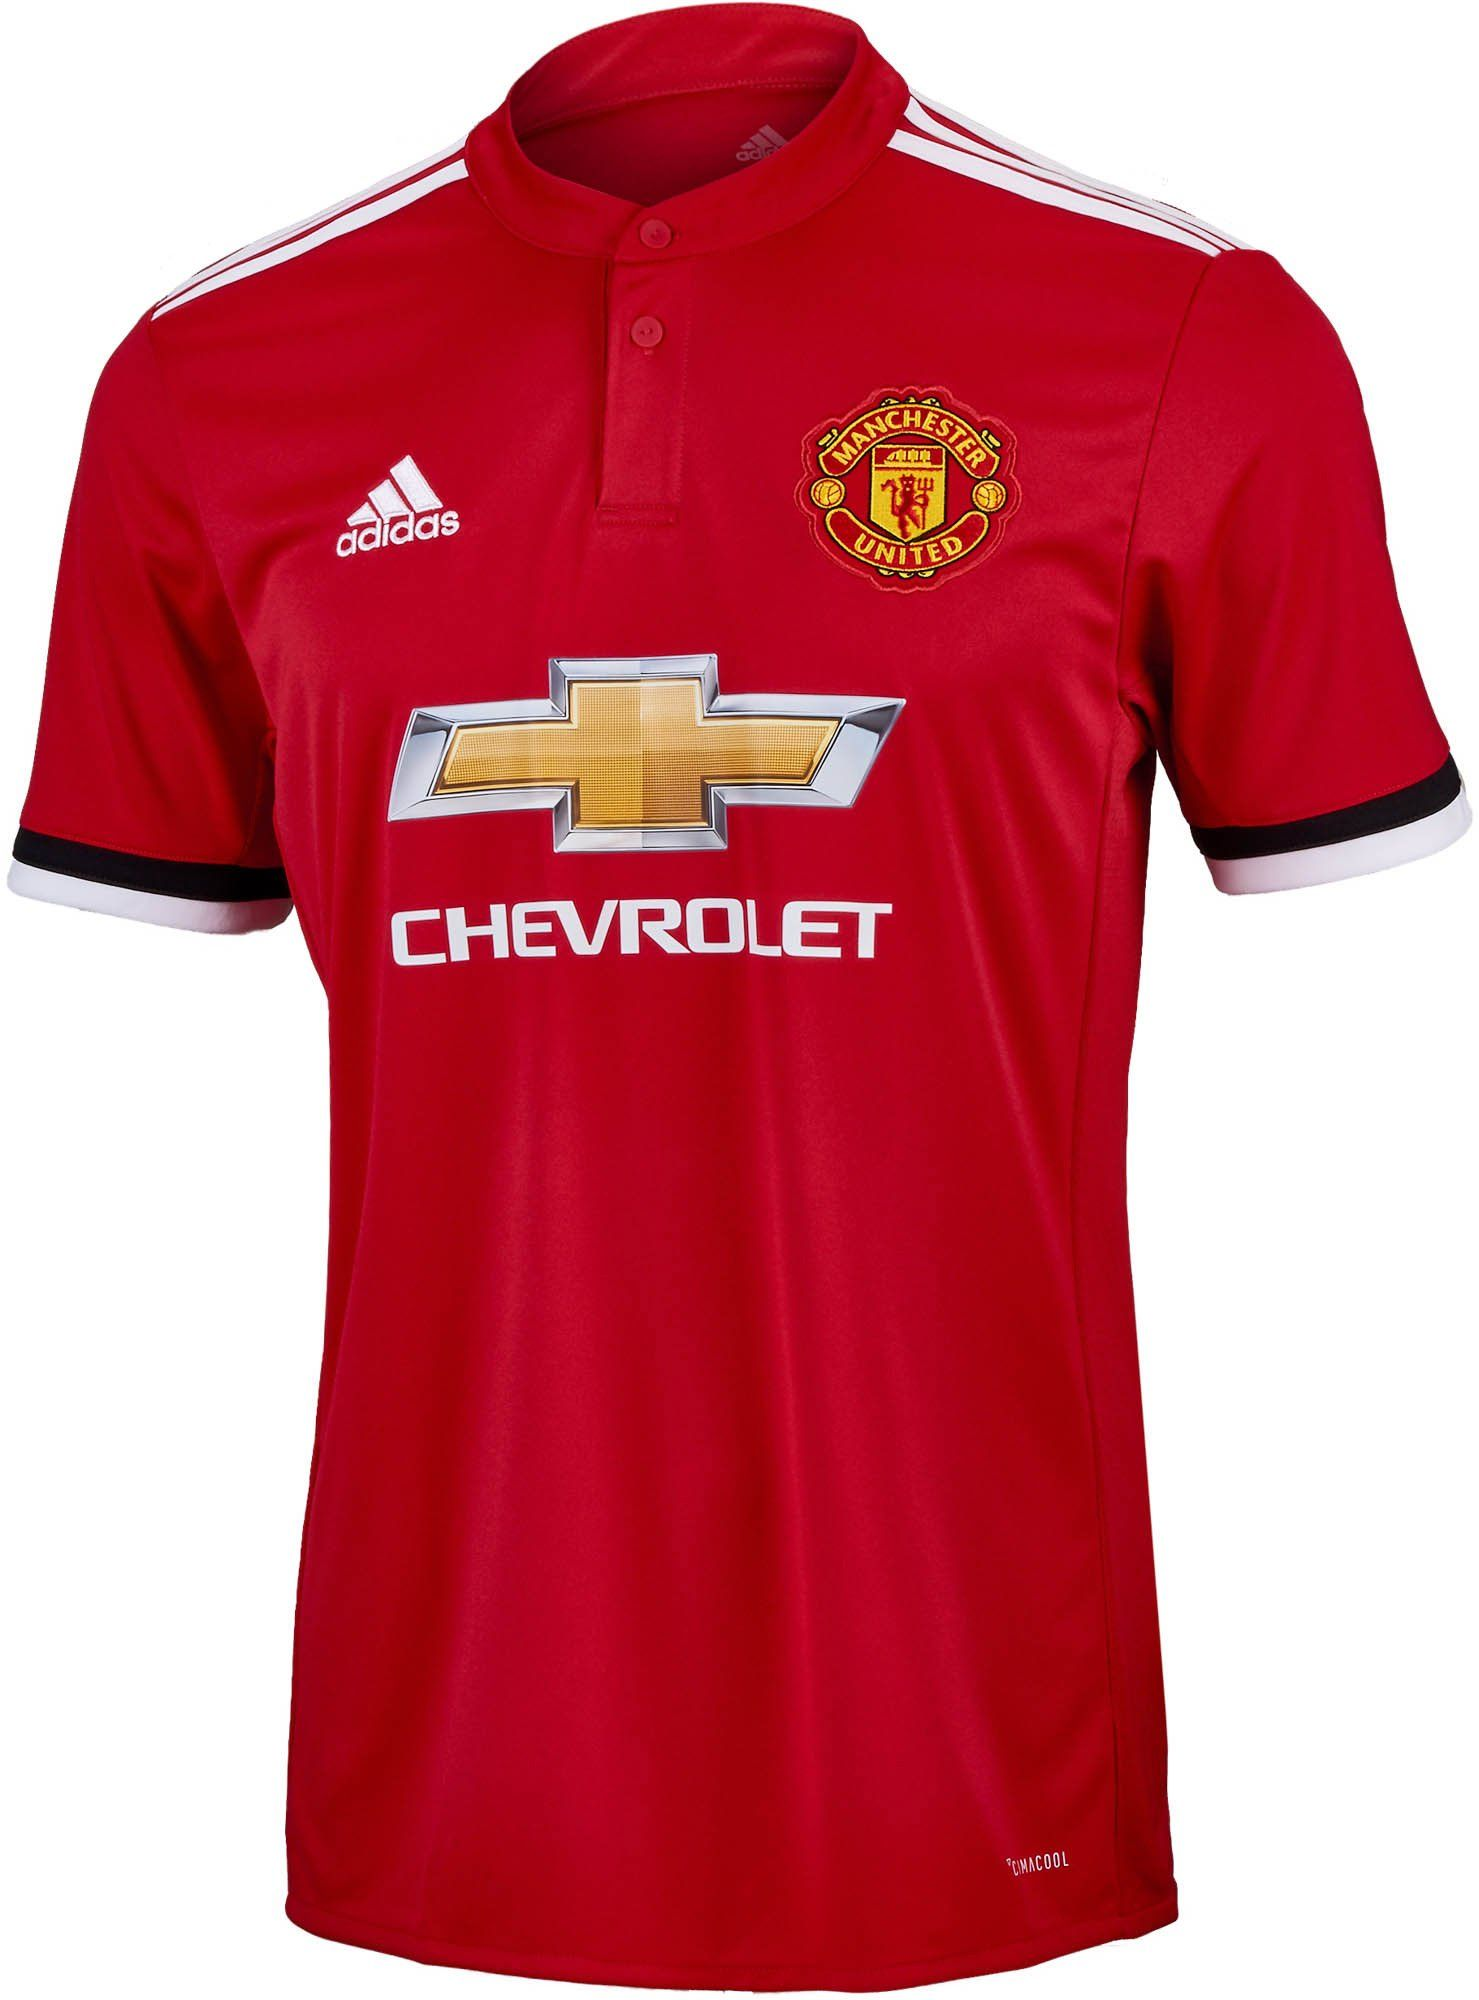 Manchester United Jersey Manchester United Store Soccerpro In 2020 Bvb